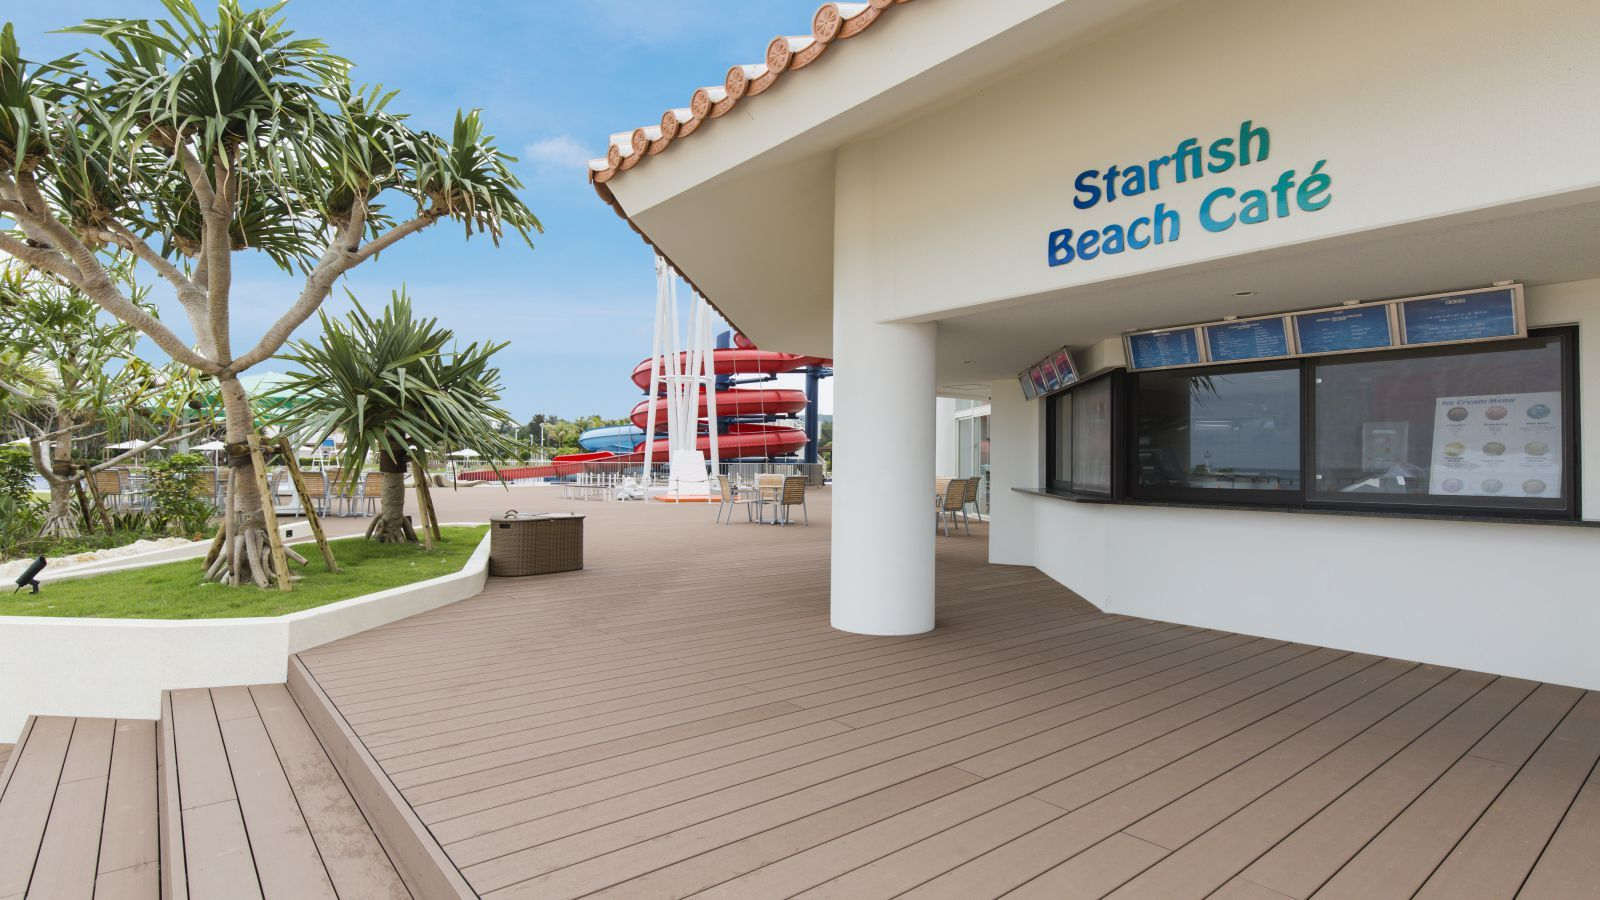 Starfish Beach Cafe